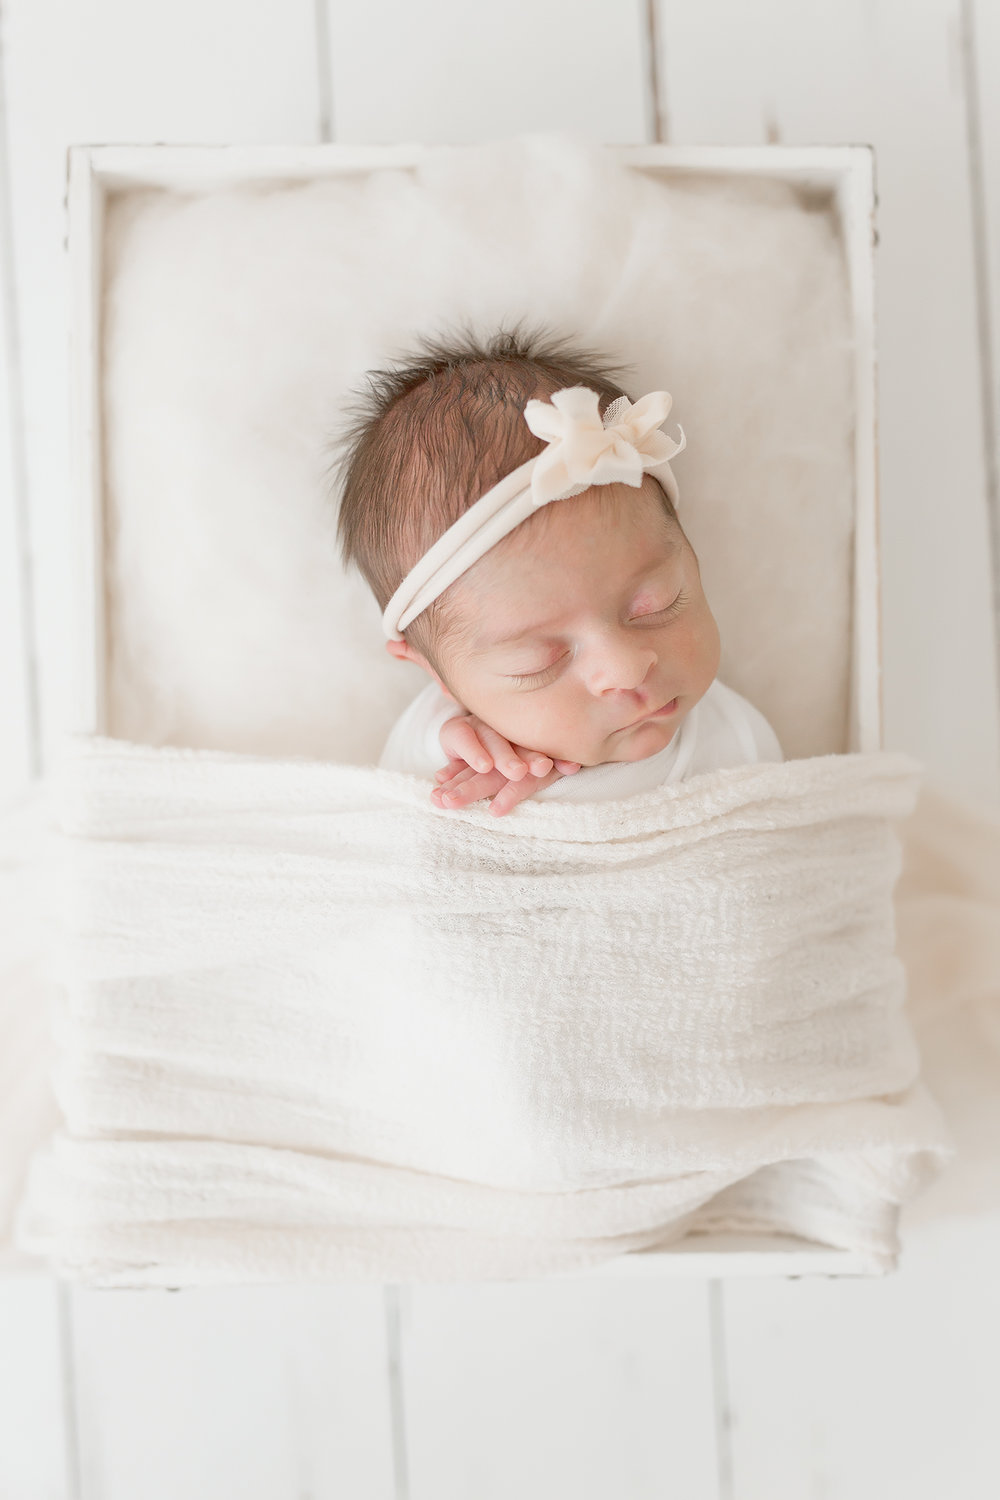 Northern-VA-Newborn-Photographer-148.jpg